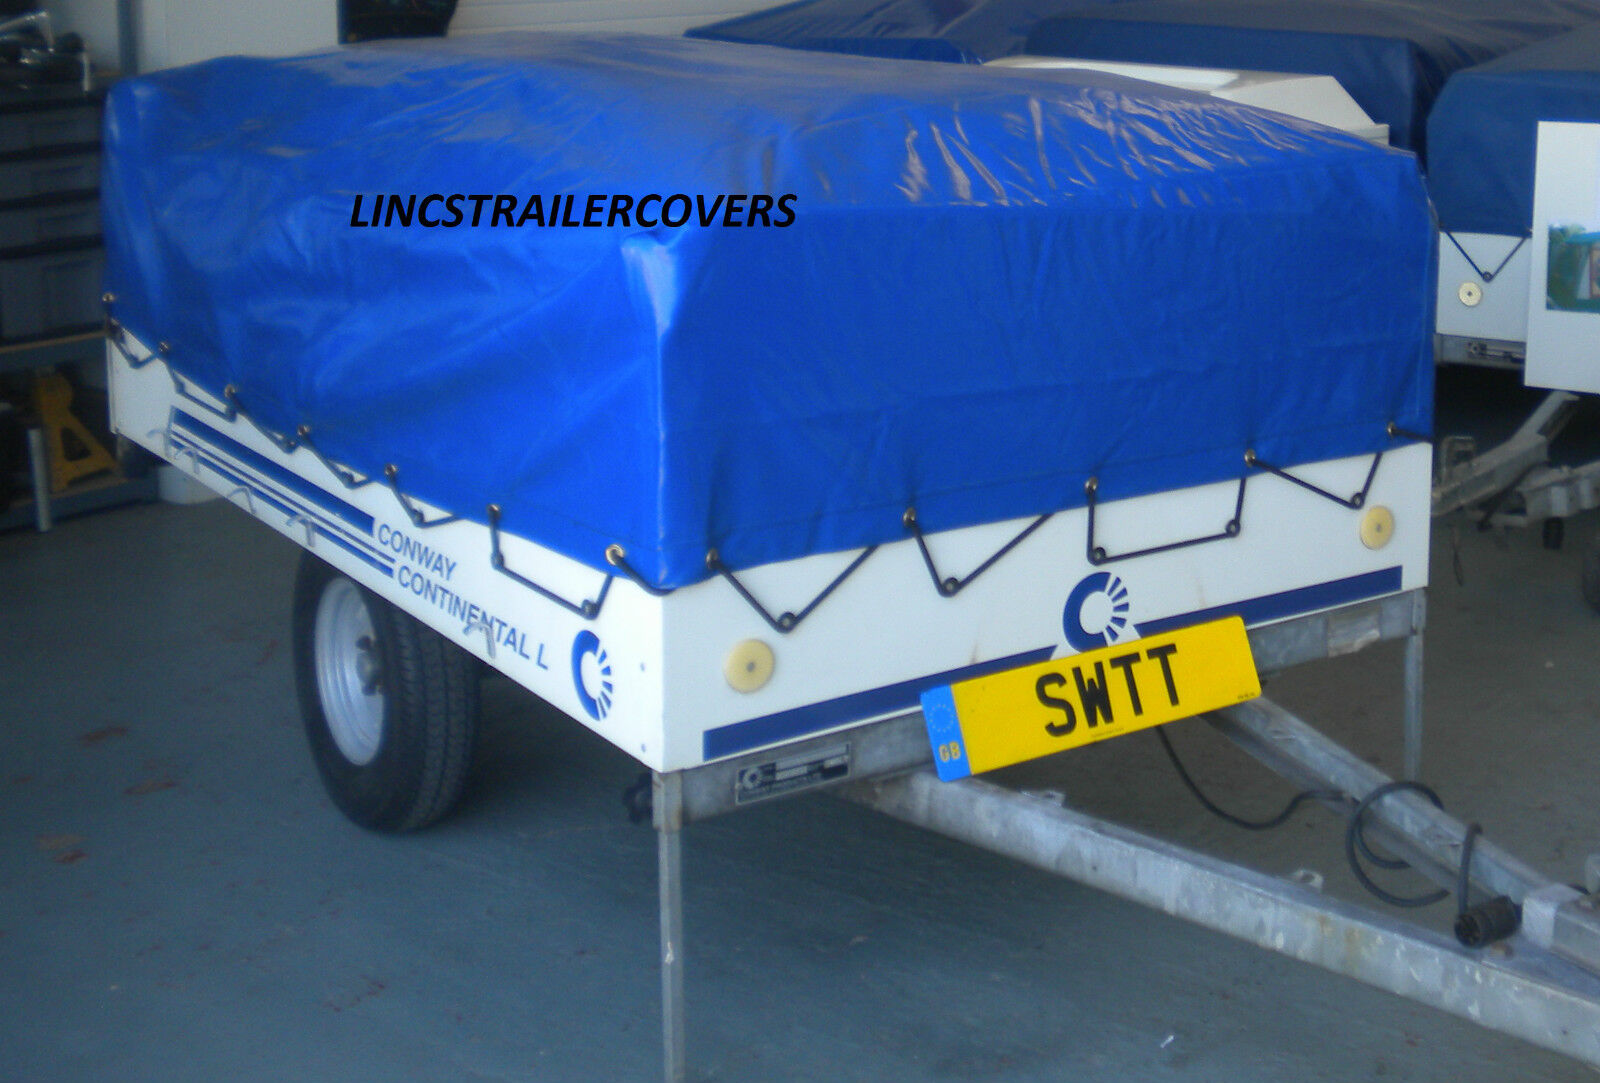 Off CONWAY WITH OUT THE KITCHEN  TRAILER TENT COVER bluee  OFF